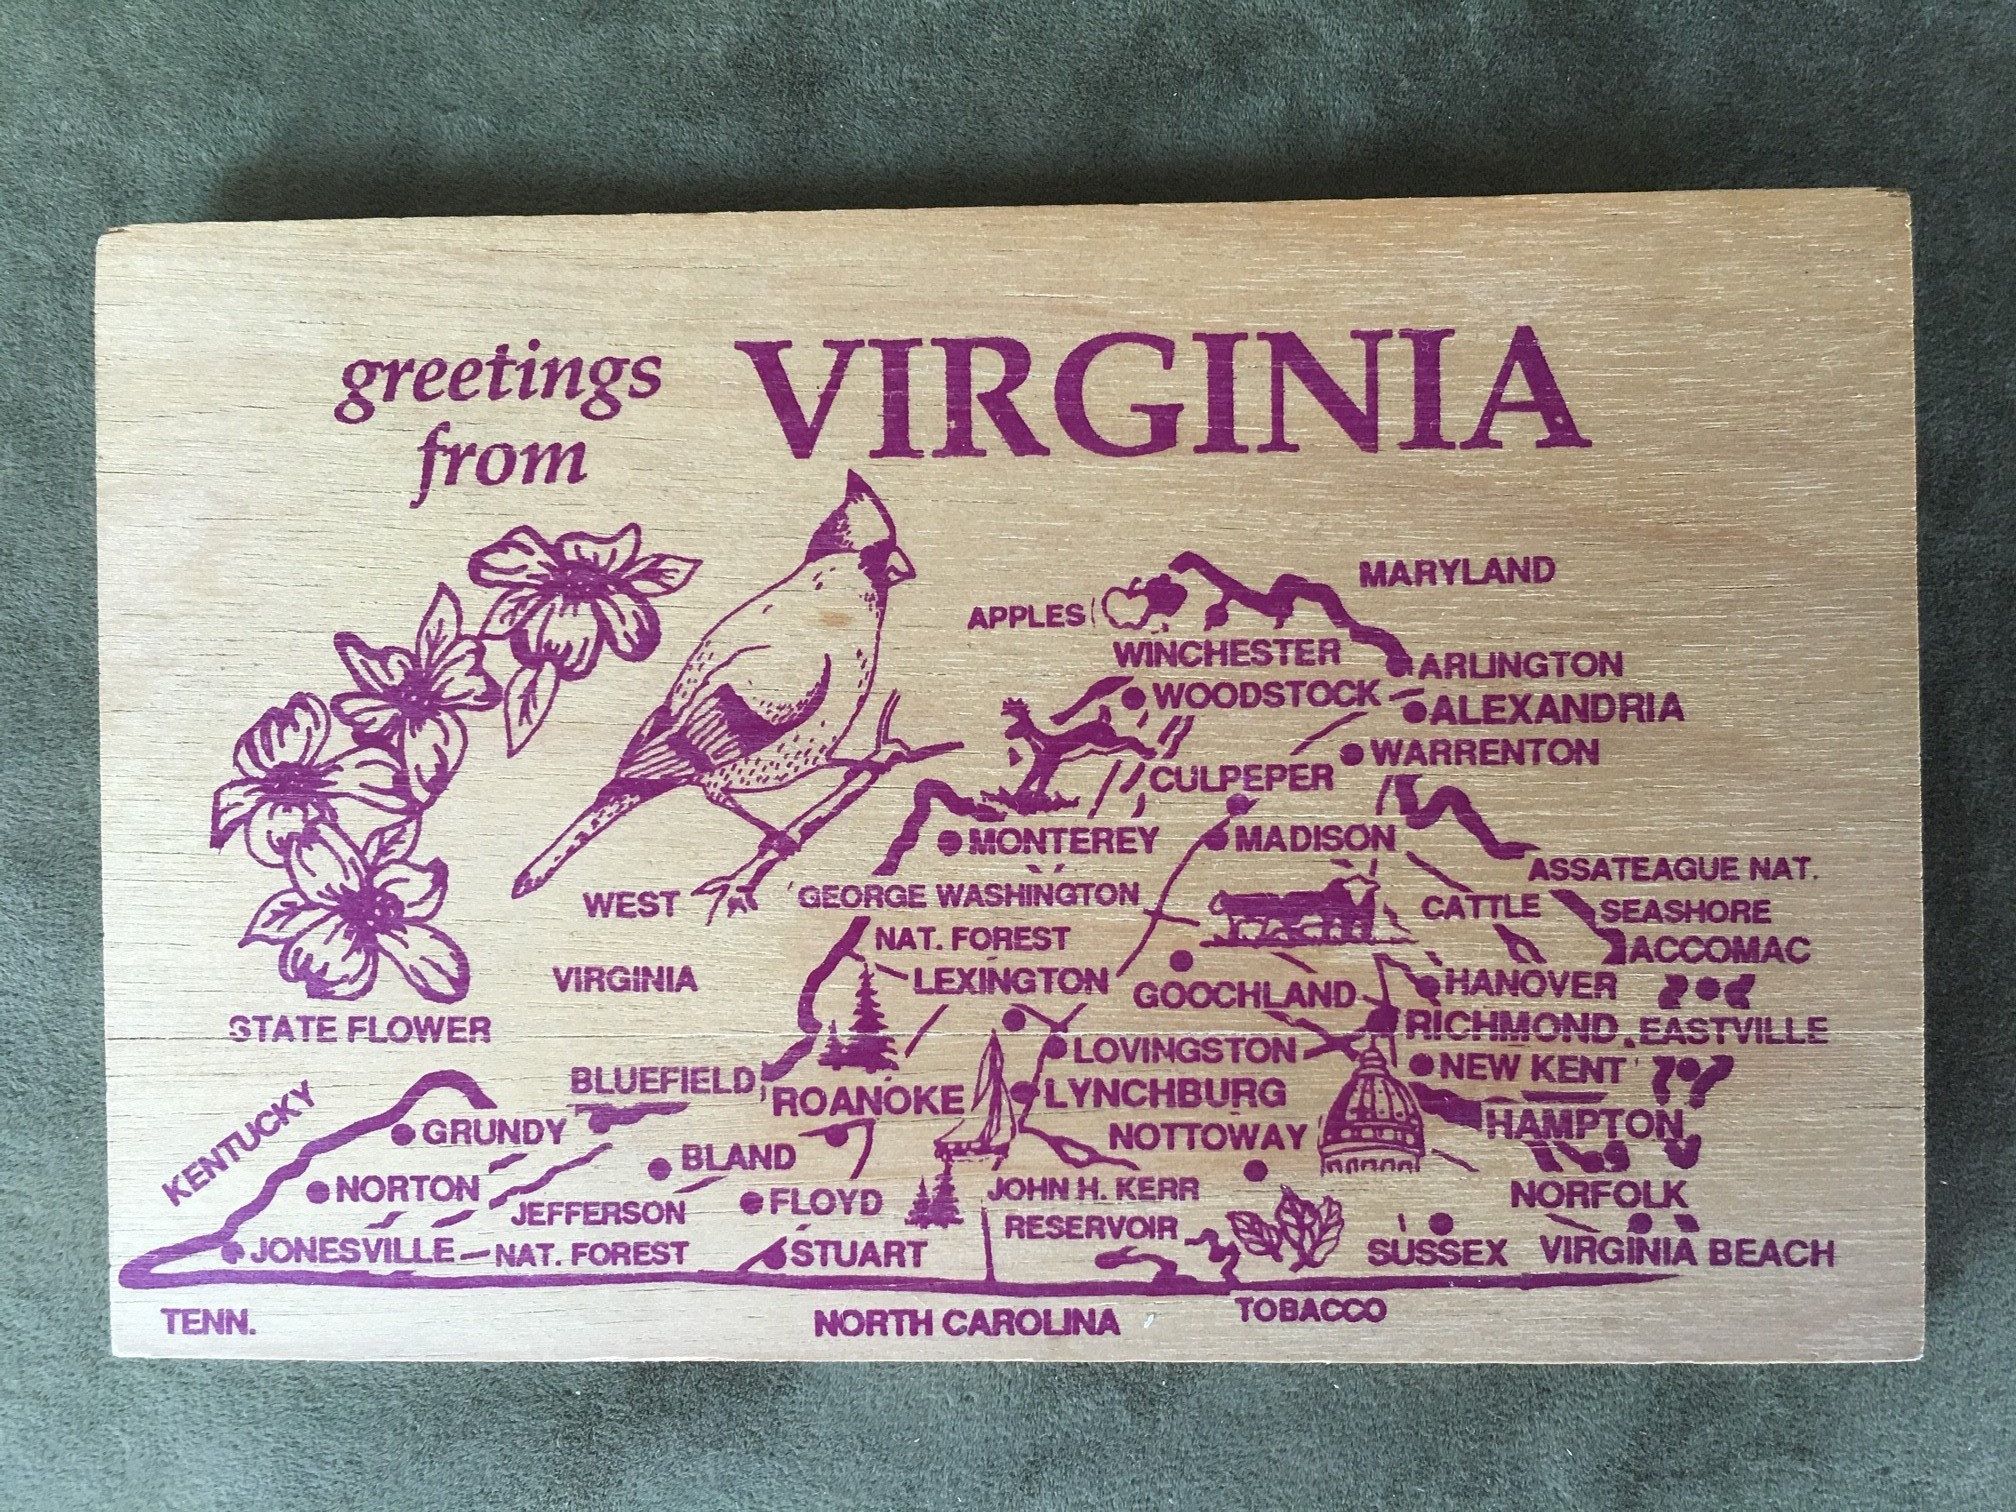 Greetings From Virginia Novelty Wooden Postcard State